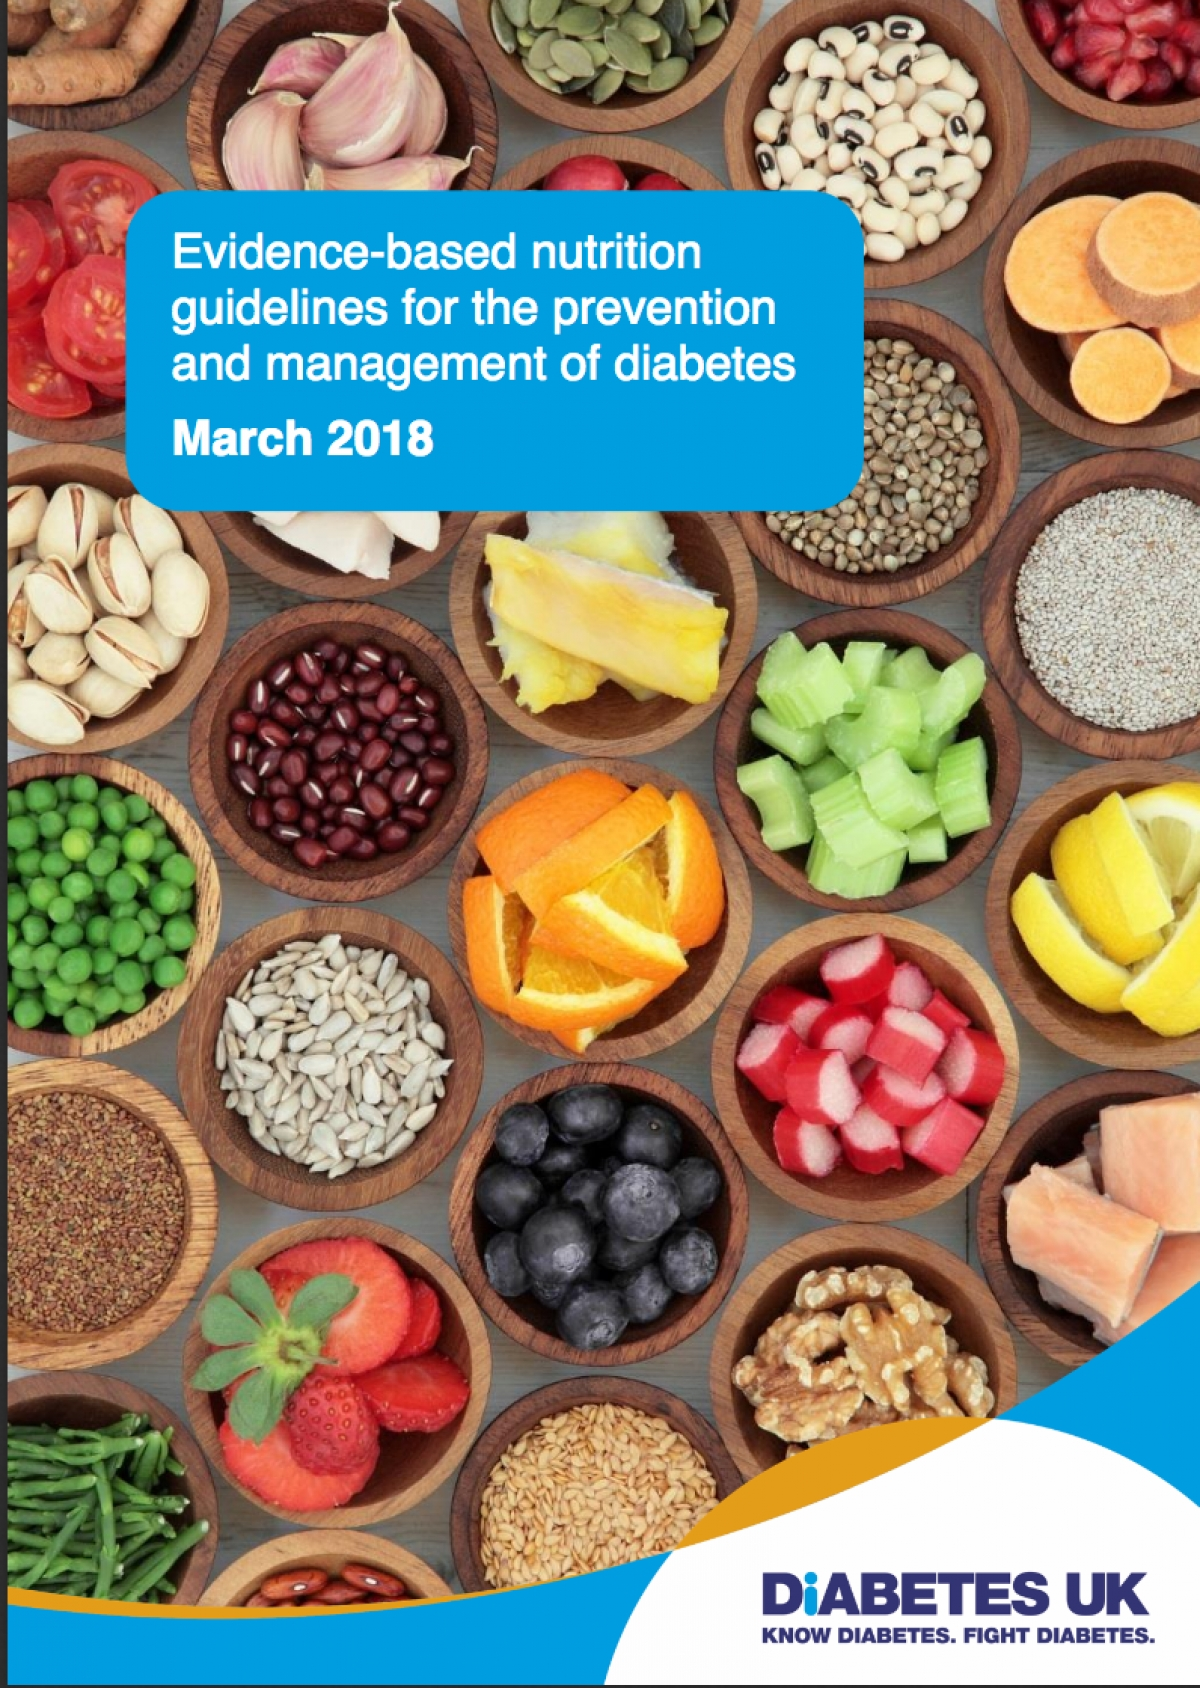 Evidence-based nutritional guidelines for the prevention and management of diabetes - March 2018